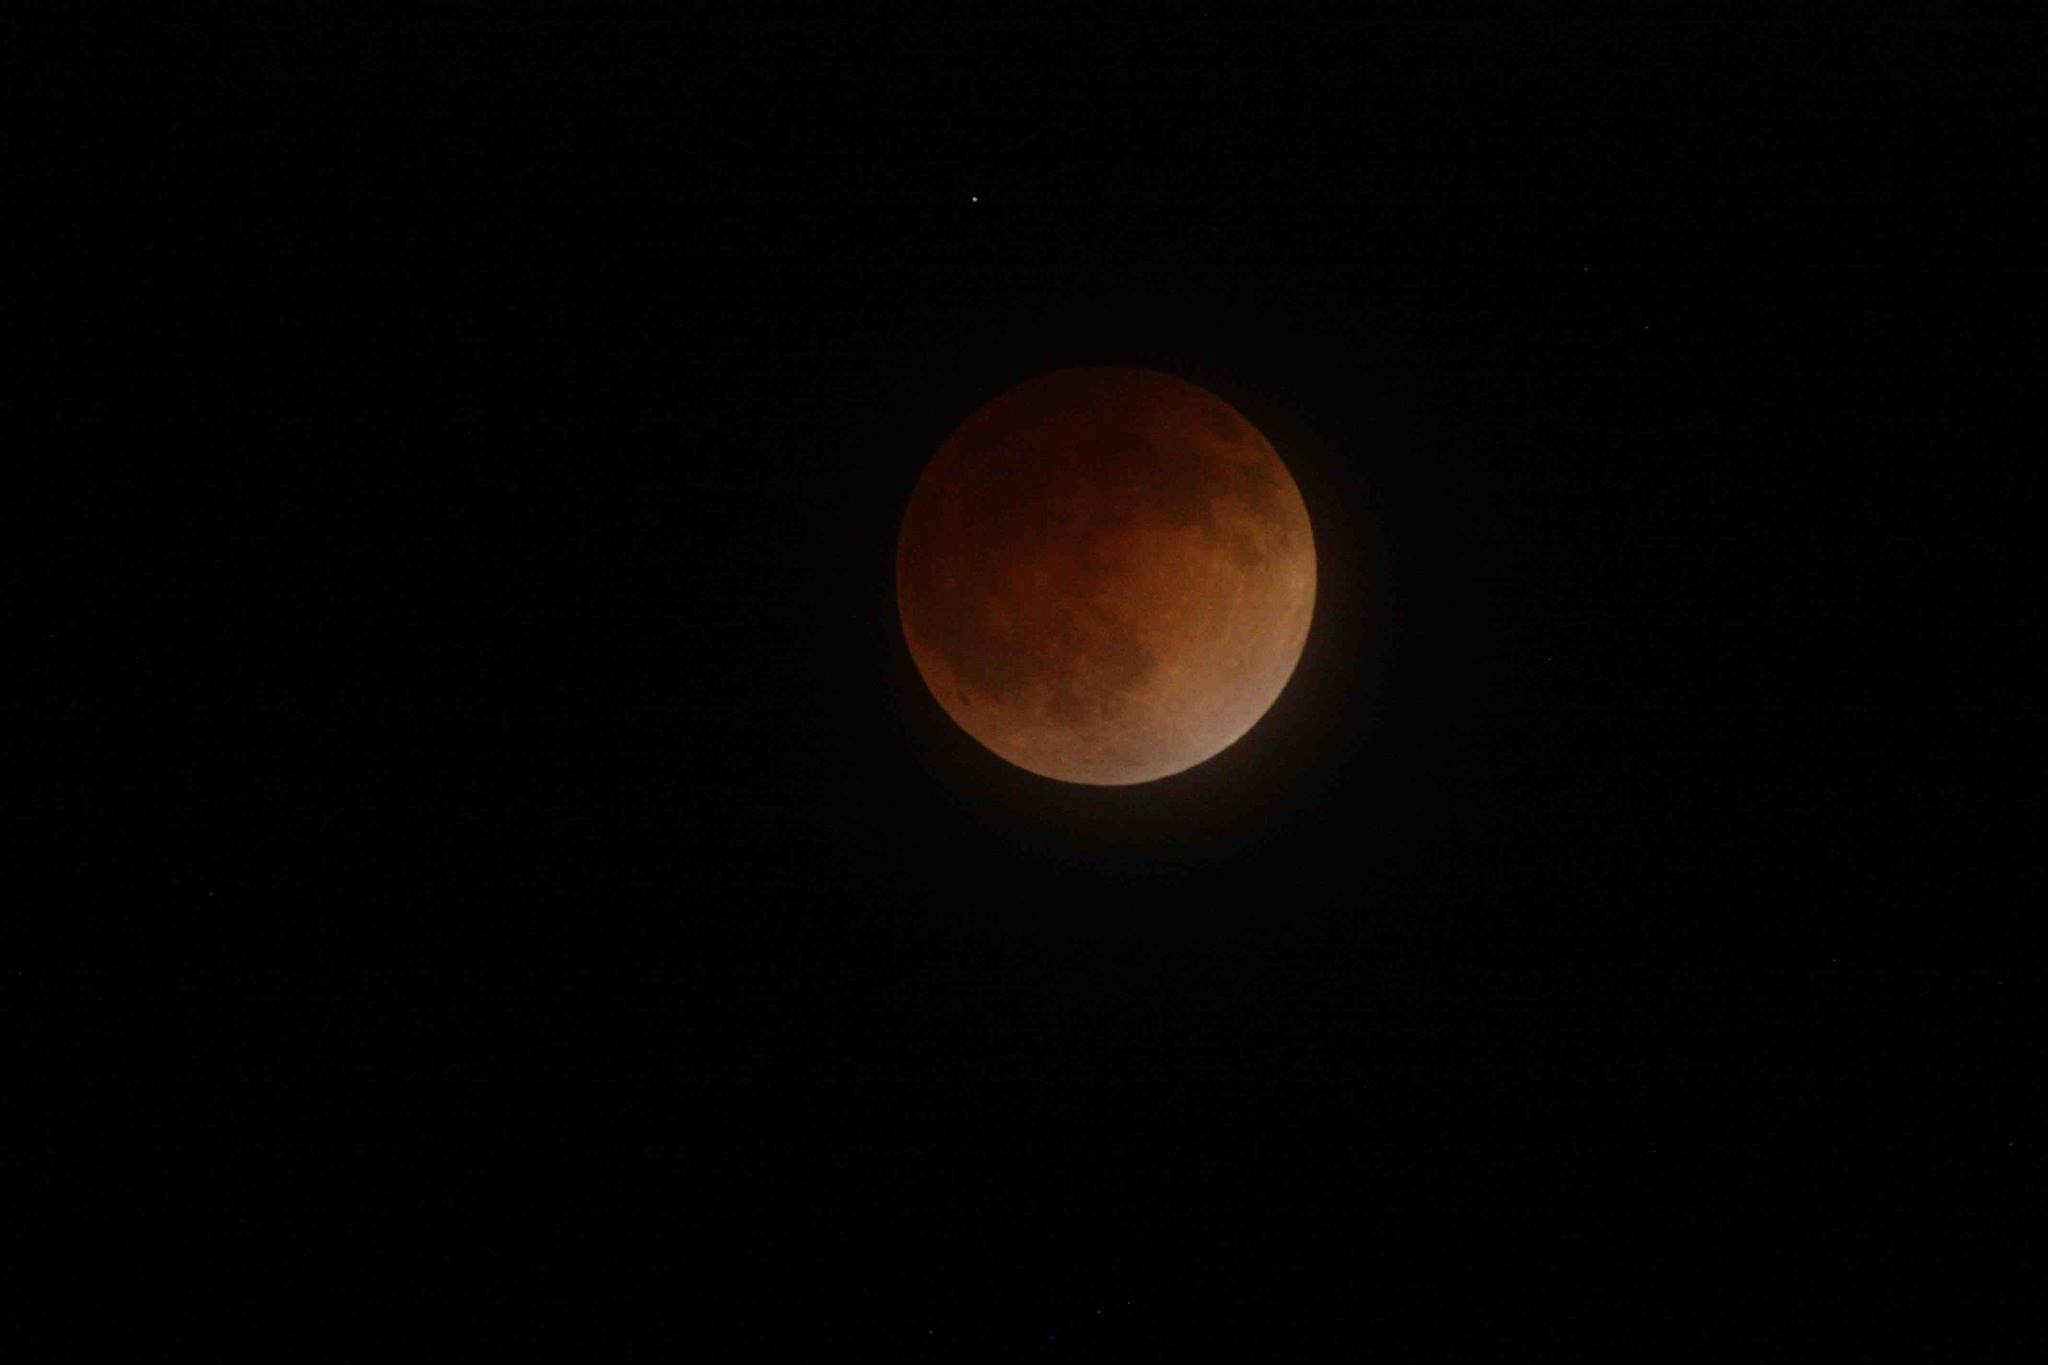 blood moon eclipse united states - photo #5